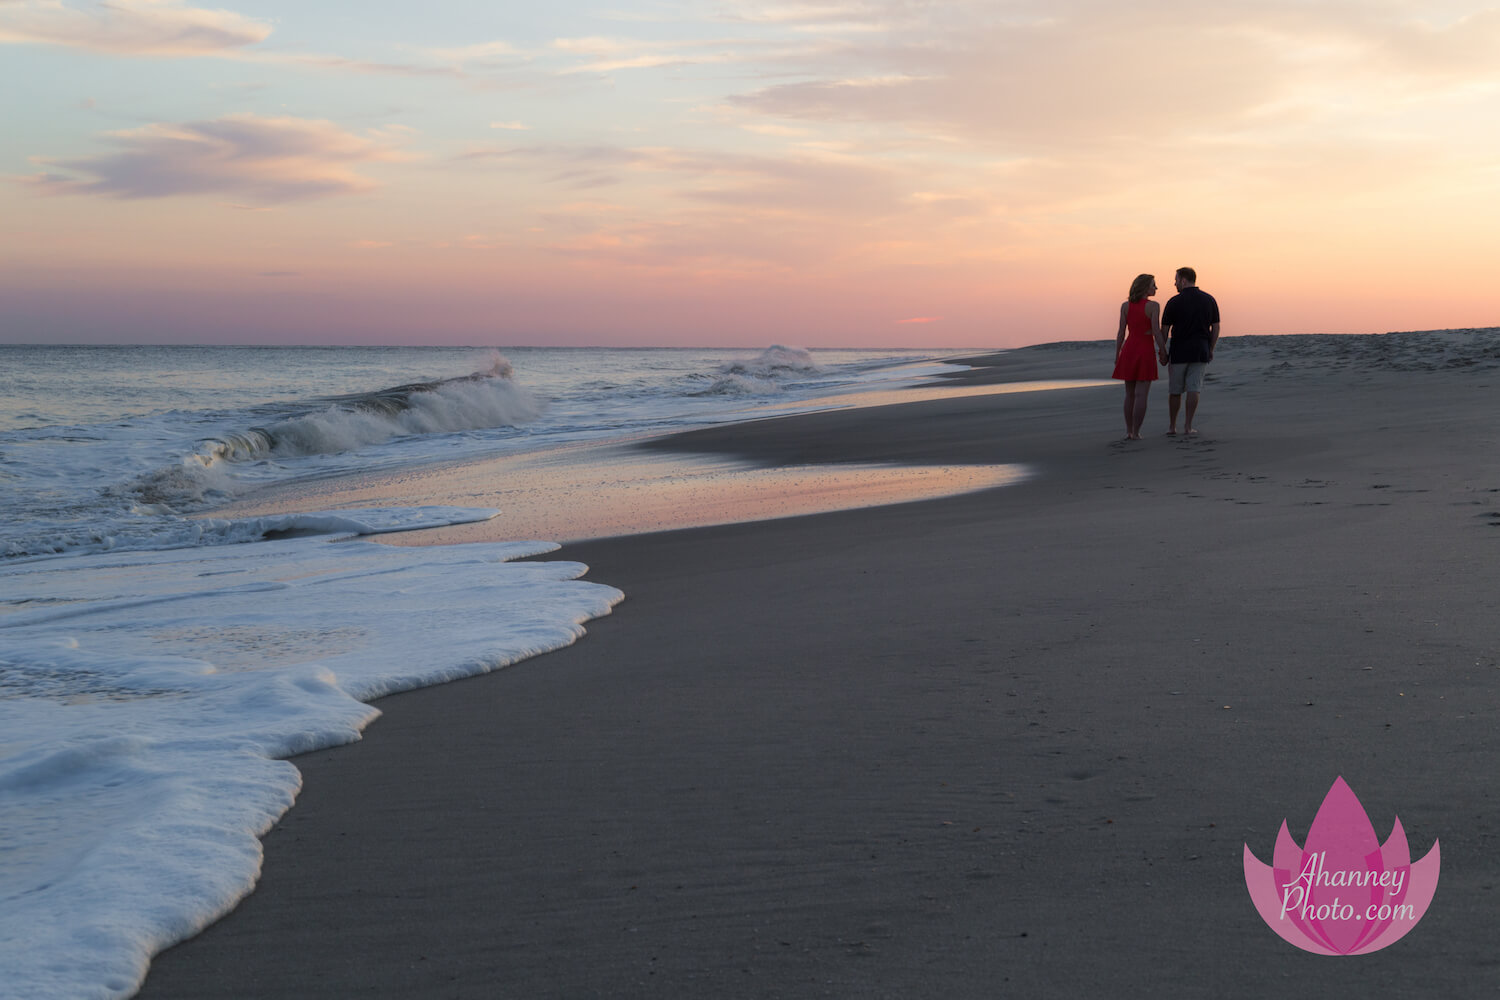 Engagement-Photography-Cape-May-NJ_Beach_ahanneyphoto_engage (1).jpeg